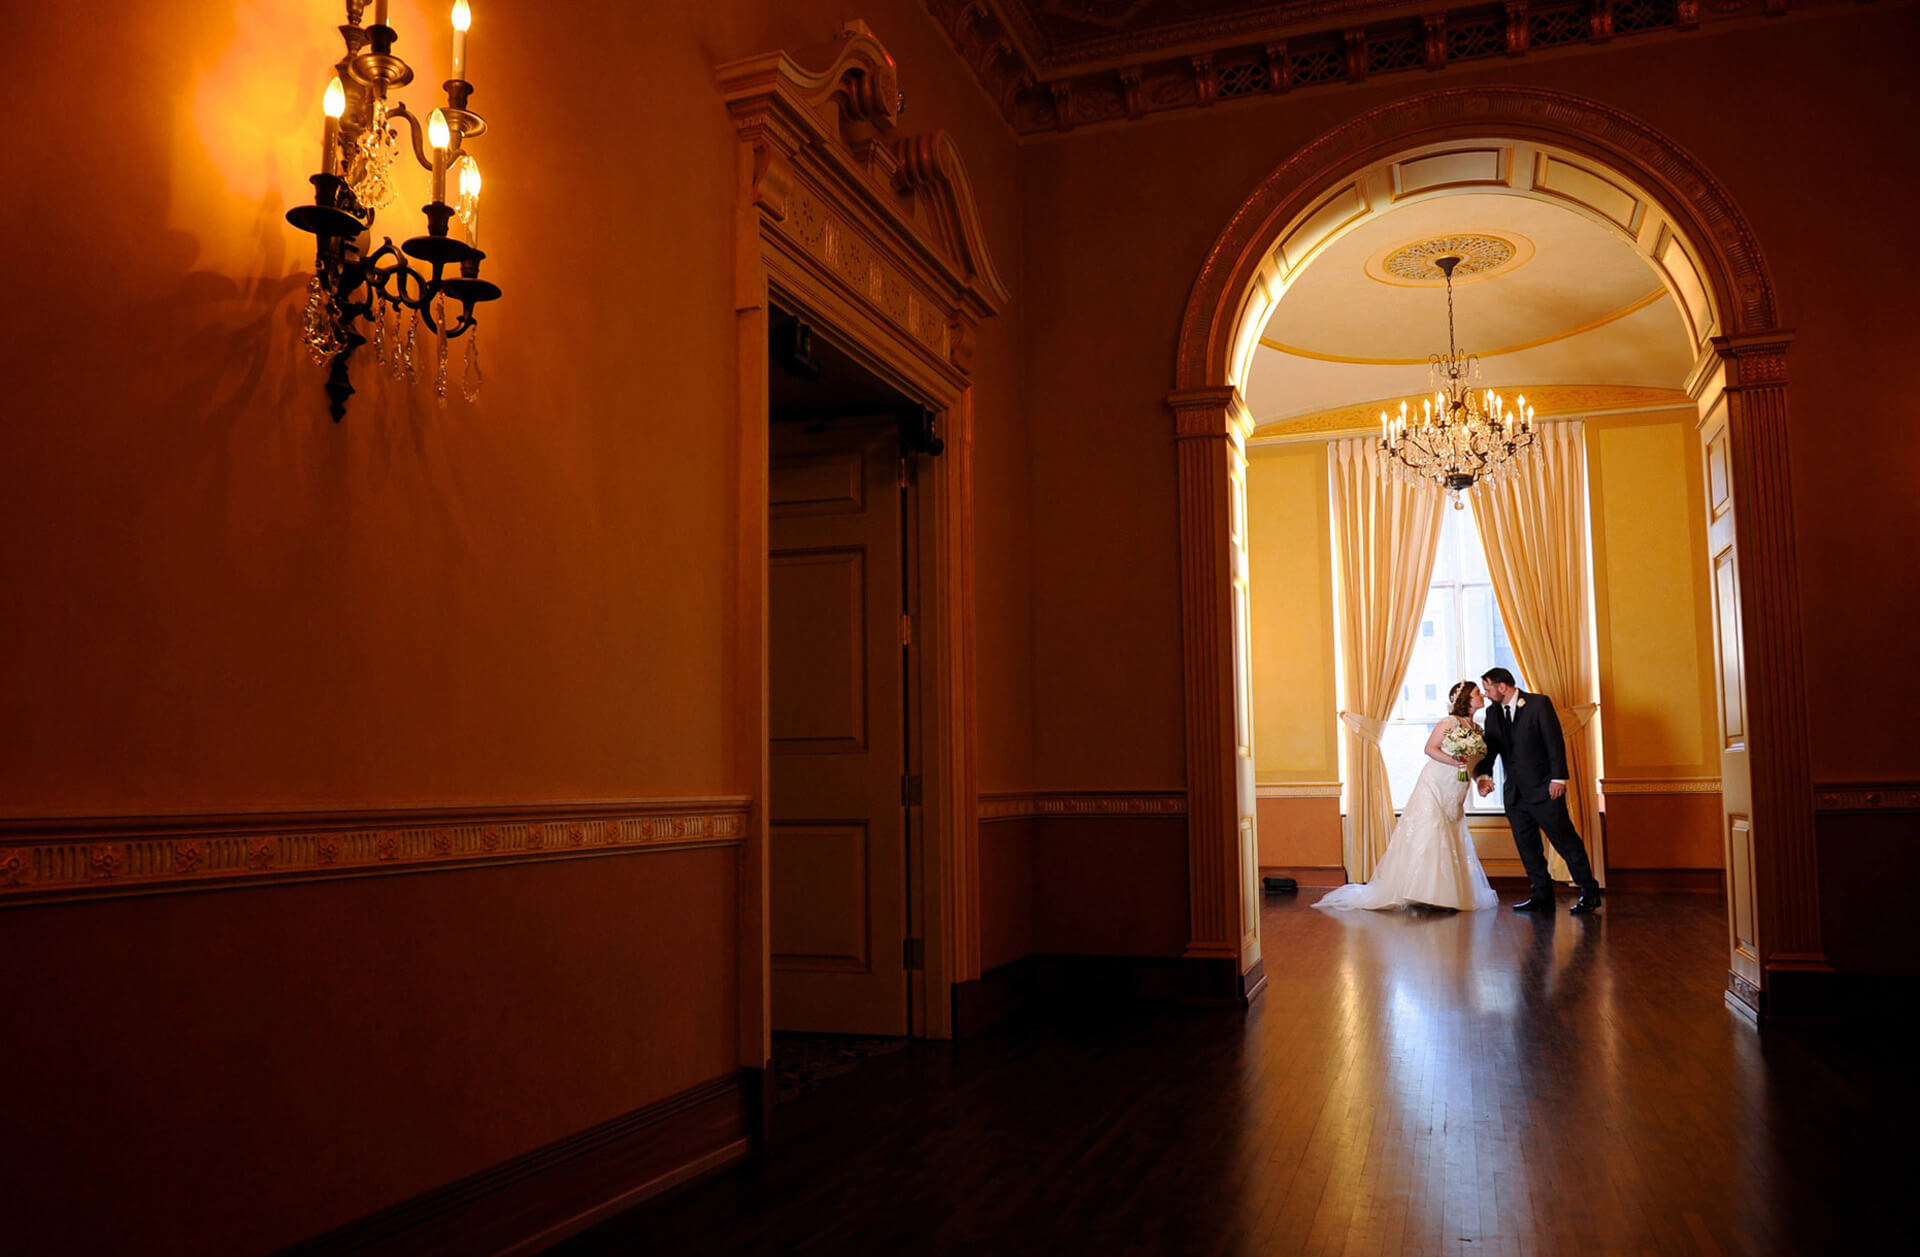 The bride and groom share a kiss at Detroit's Colony Club wedding reception venue.